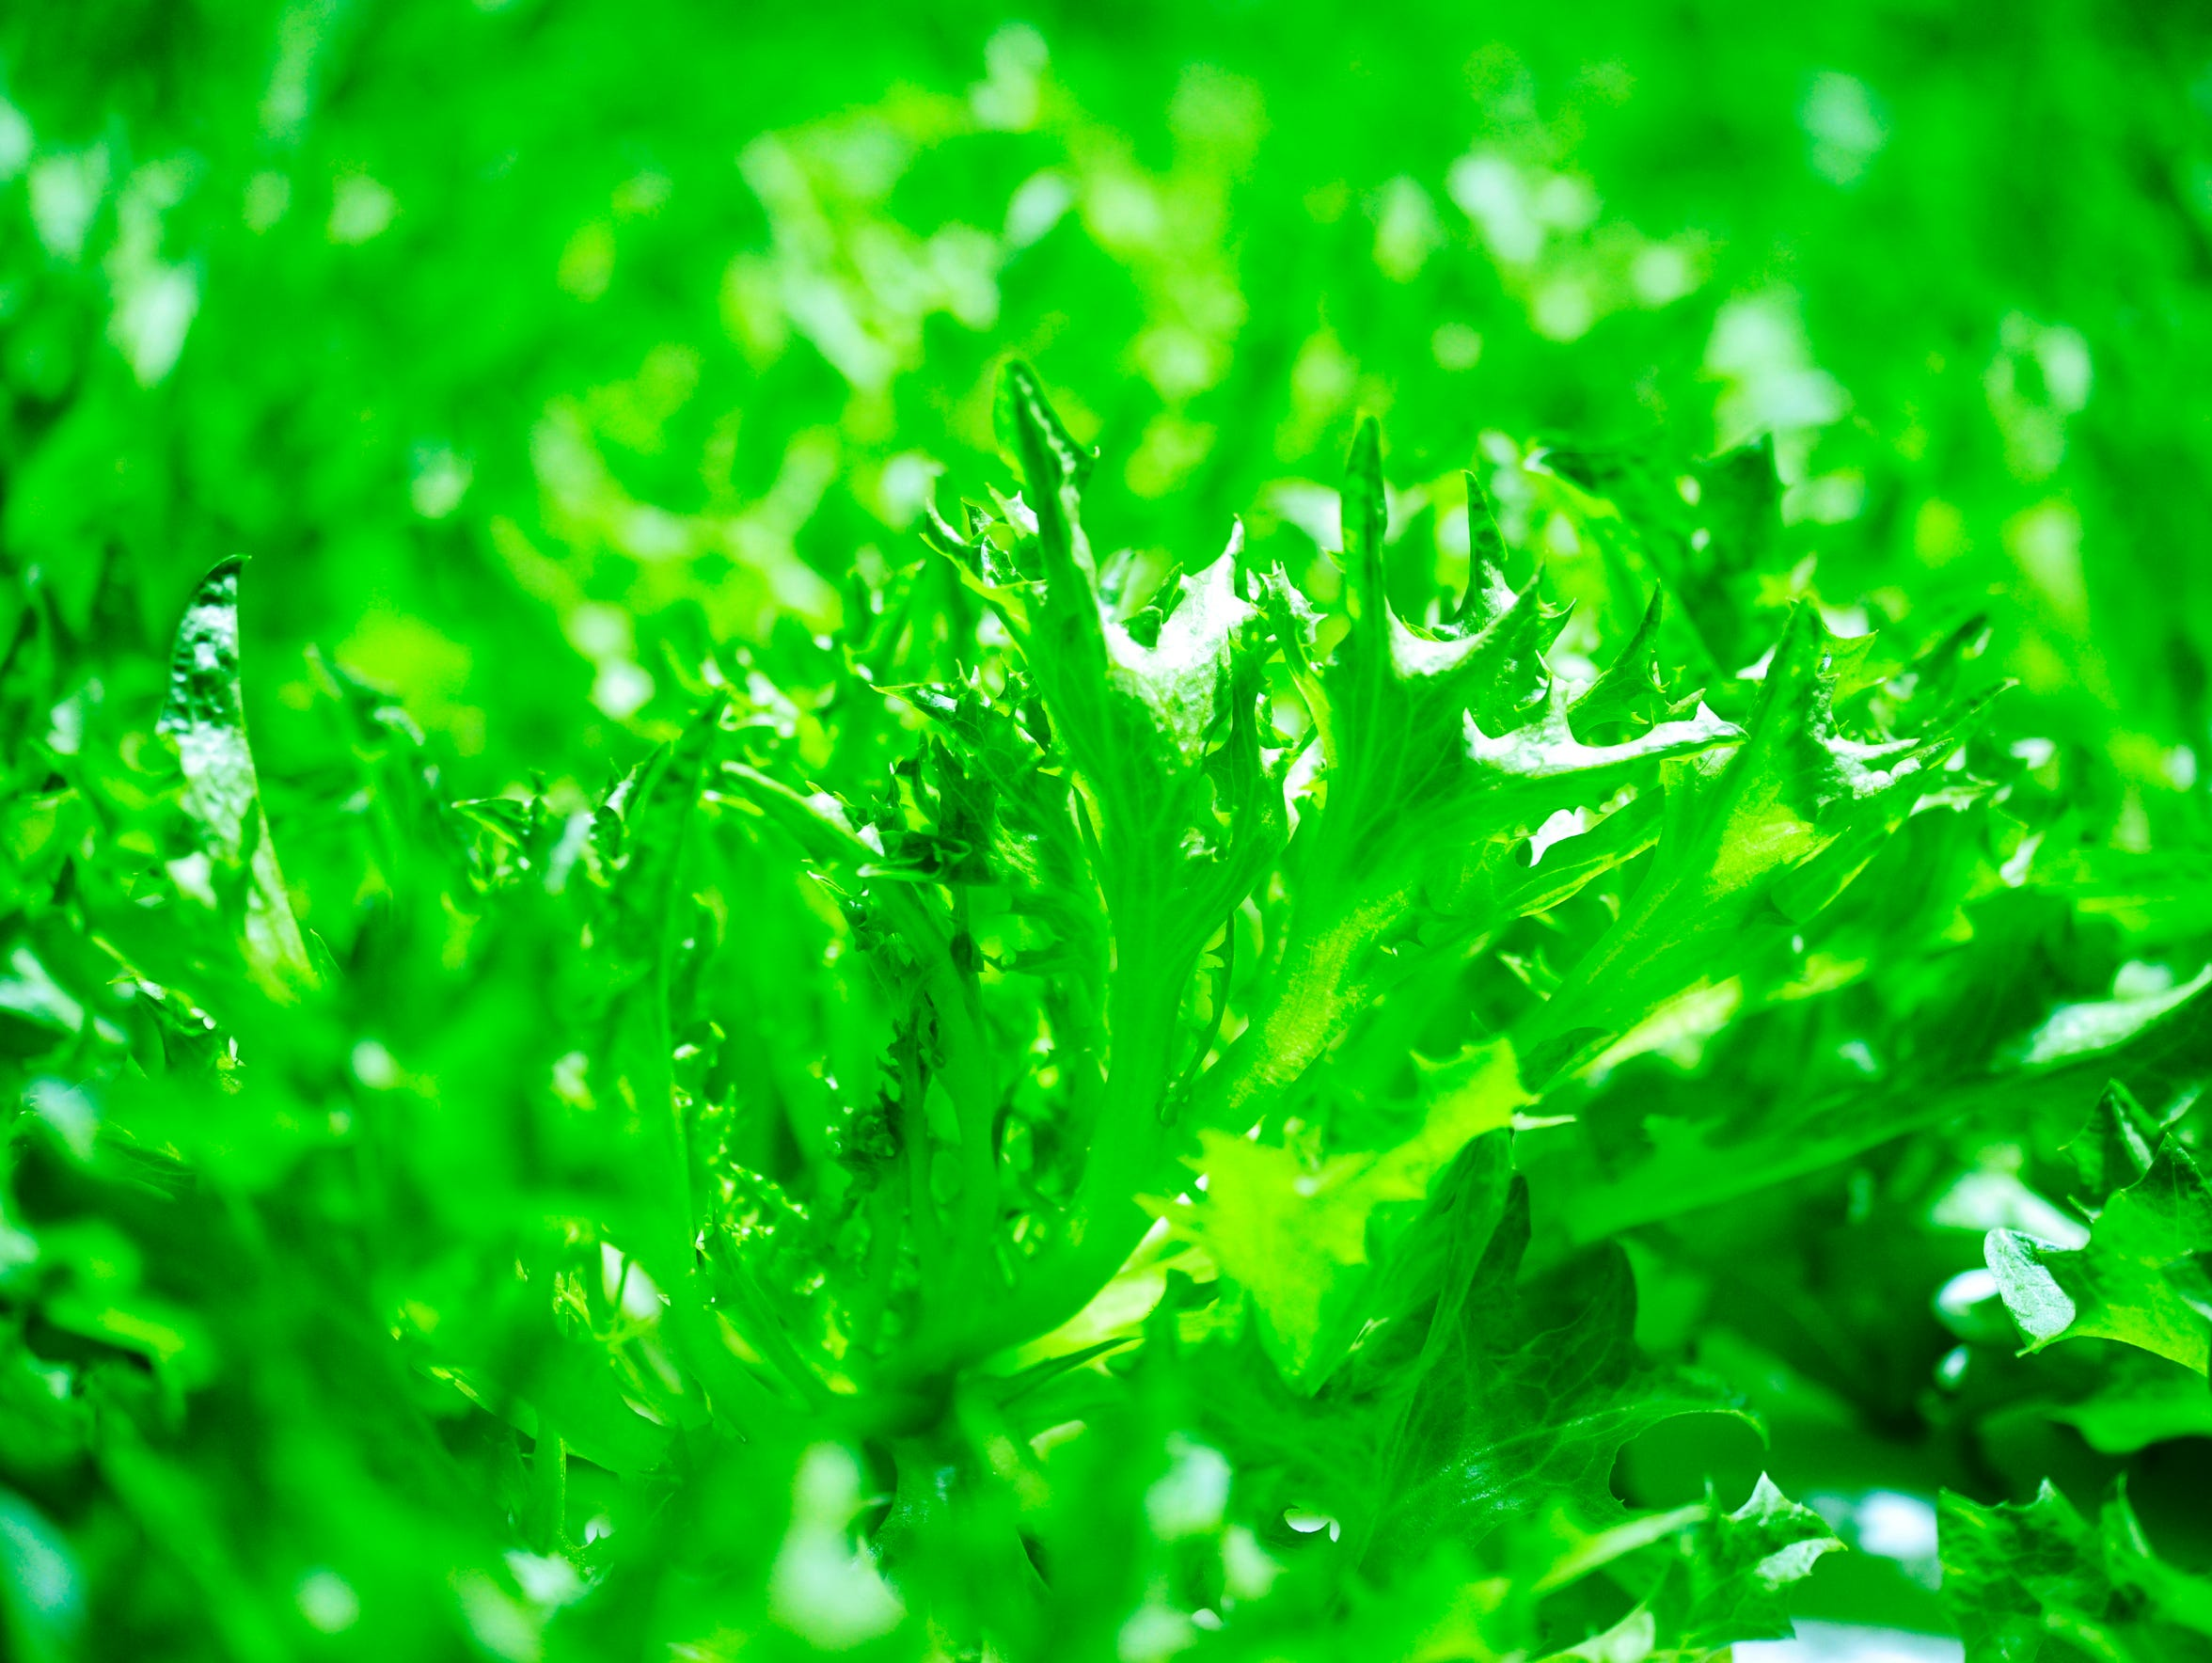 Red Sweet greens growing in water at Greener Roots